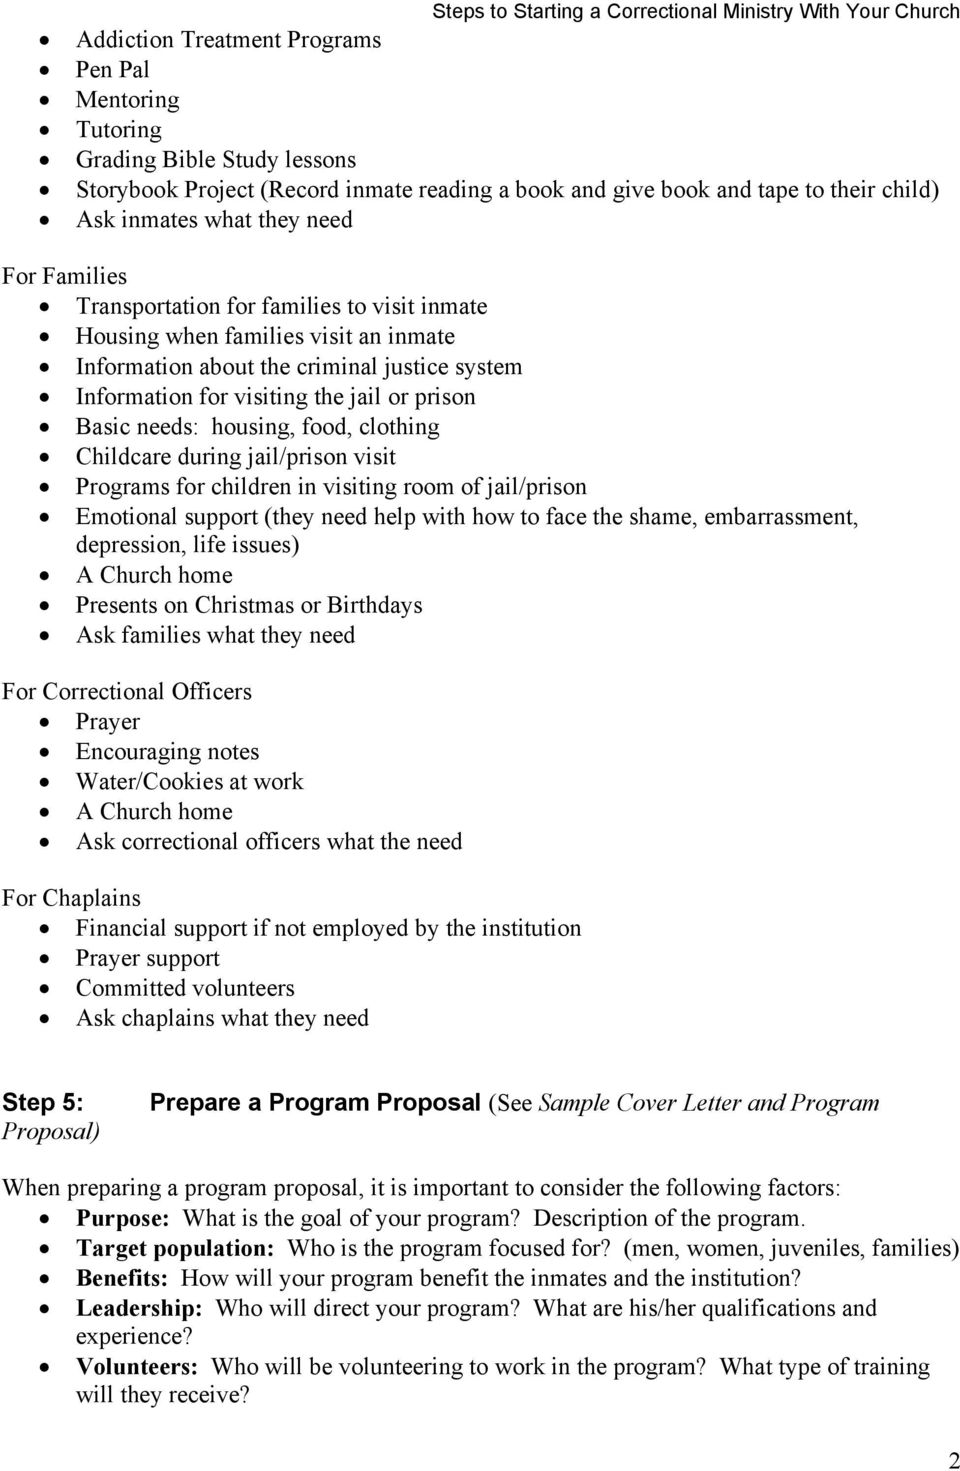 Steps To Starting A Correctional Ministry With Your Church Pdf